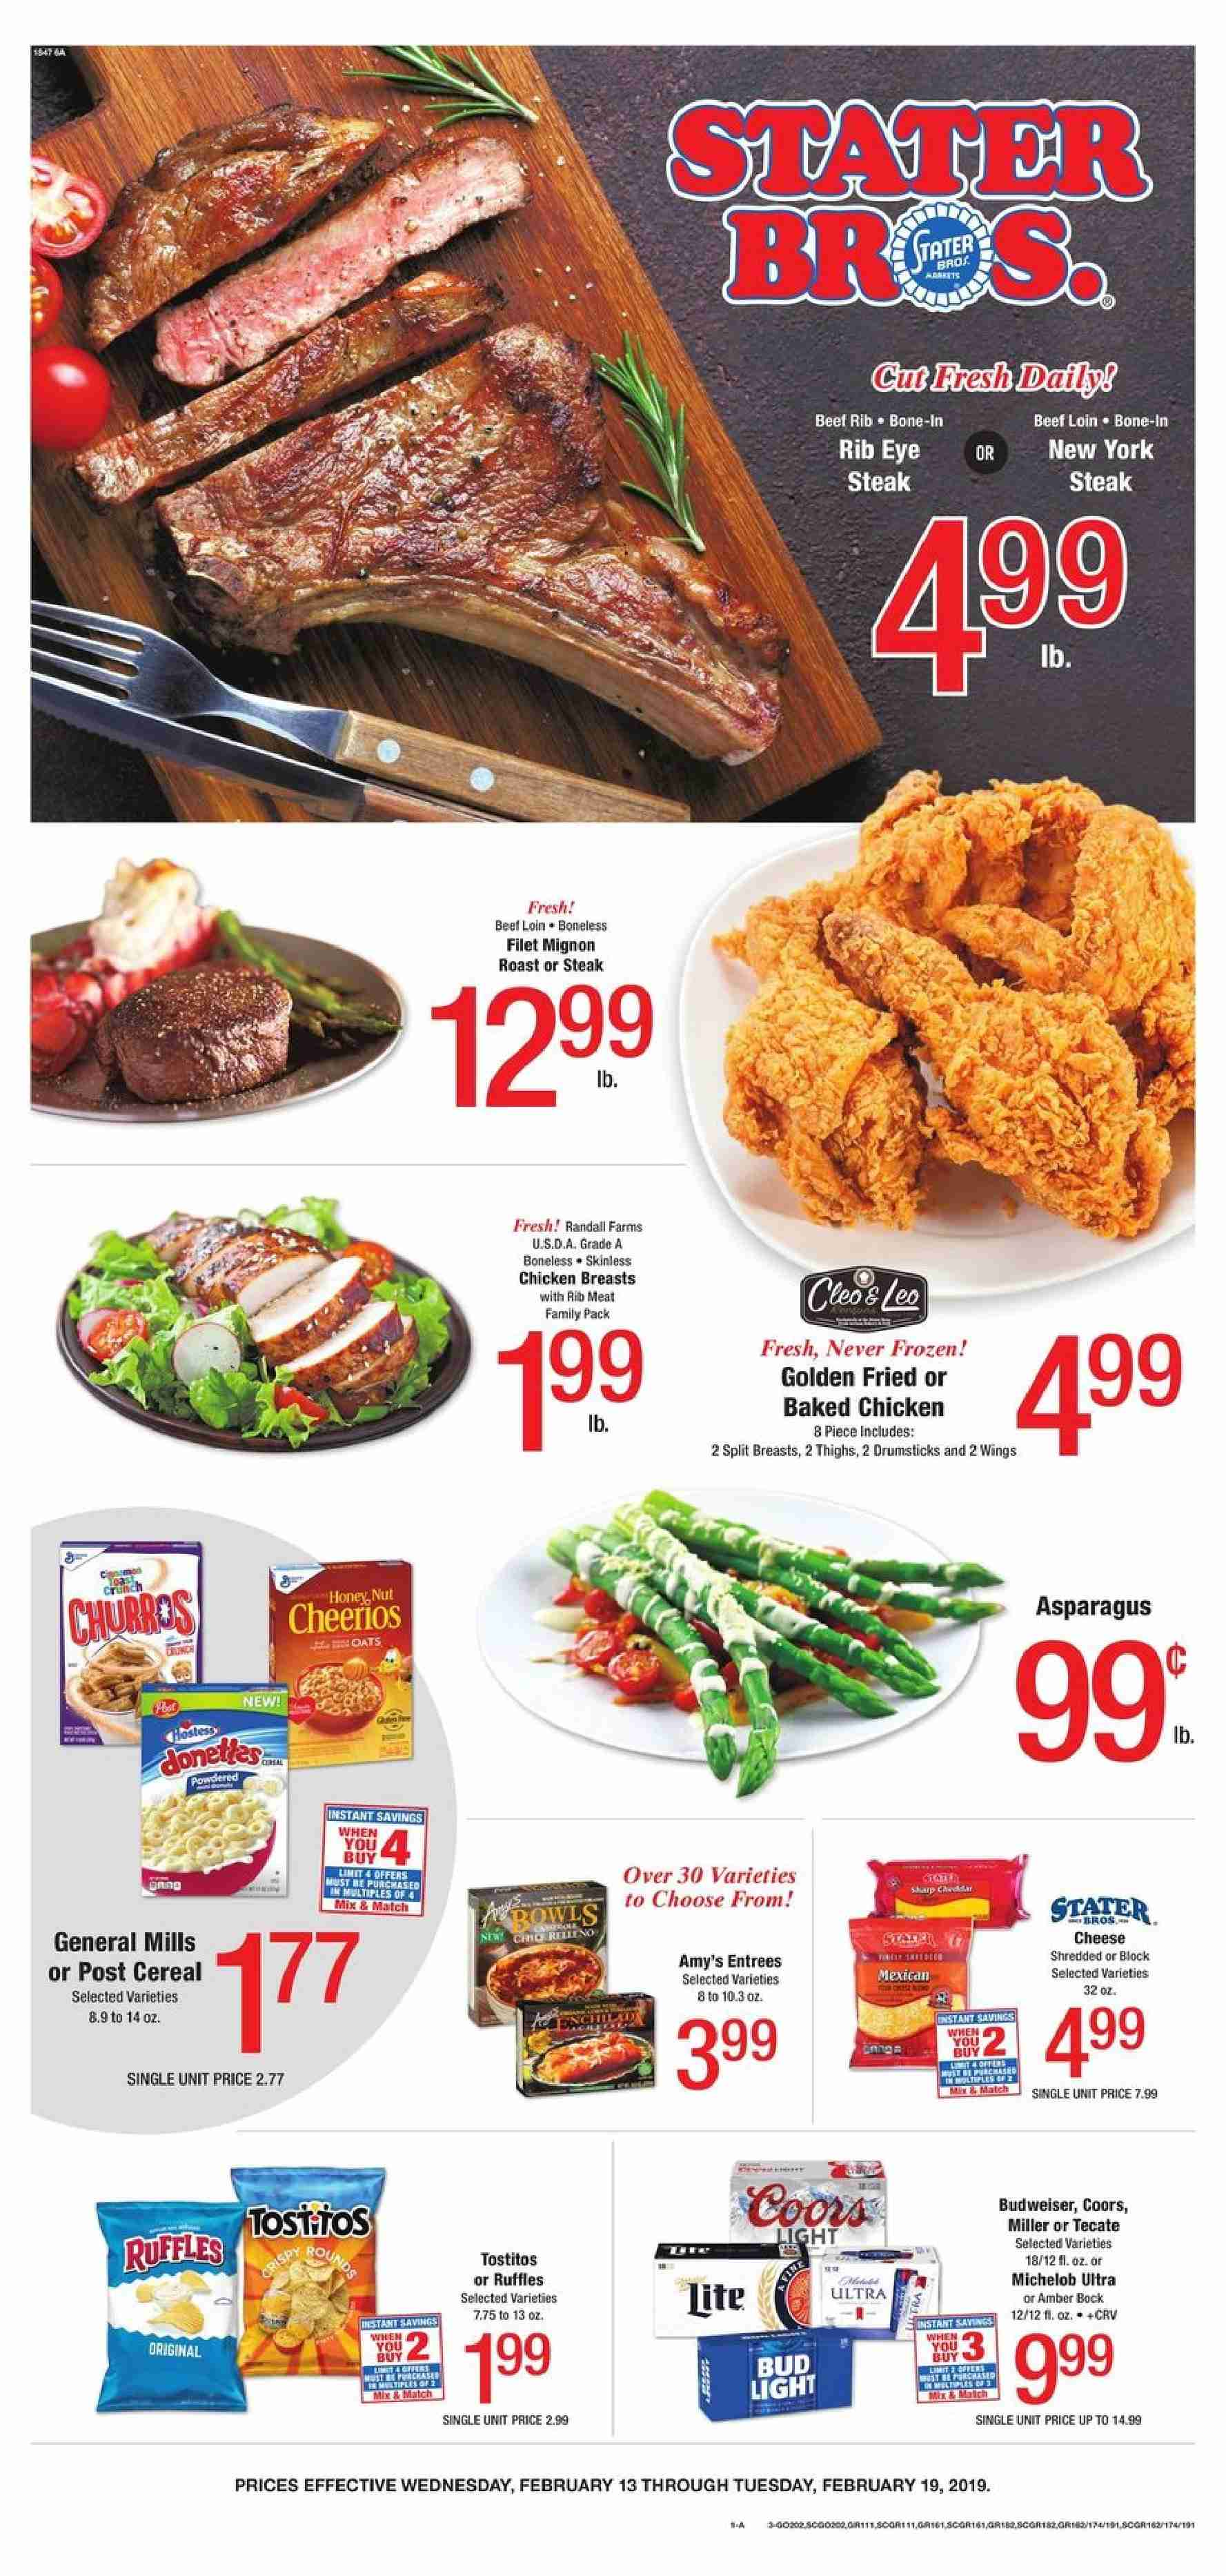 Stater Bros. Flyer - 02.13.2019 - 02.19.2019 - Sales products - Budweiser, Coors, Michelob, asparagus, cheese, cereals, Cheerios, honey, chicken, chicken breast, beef meat, steak, Frozen. Page 1.